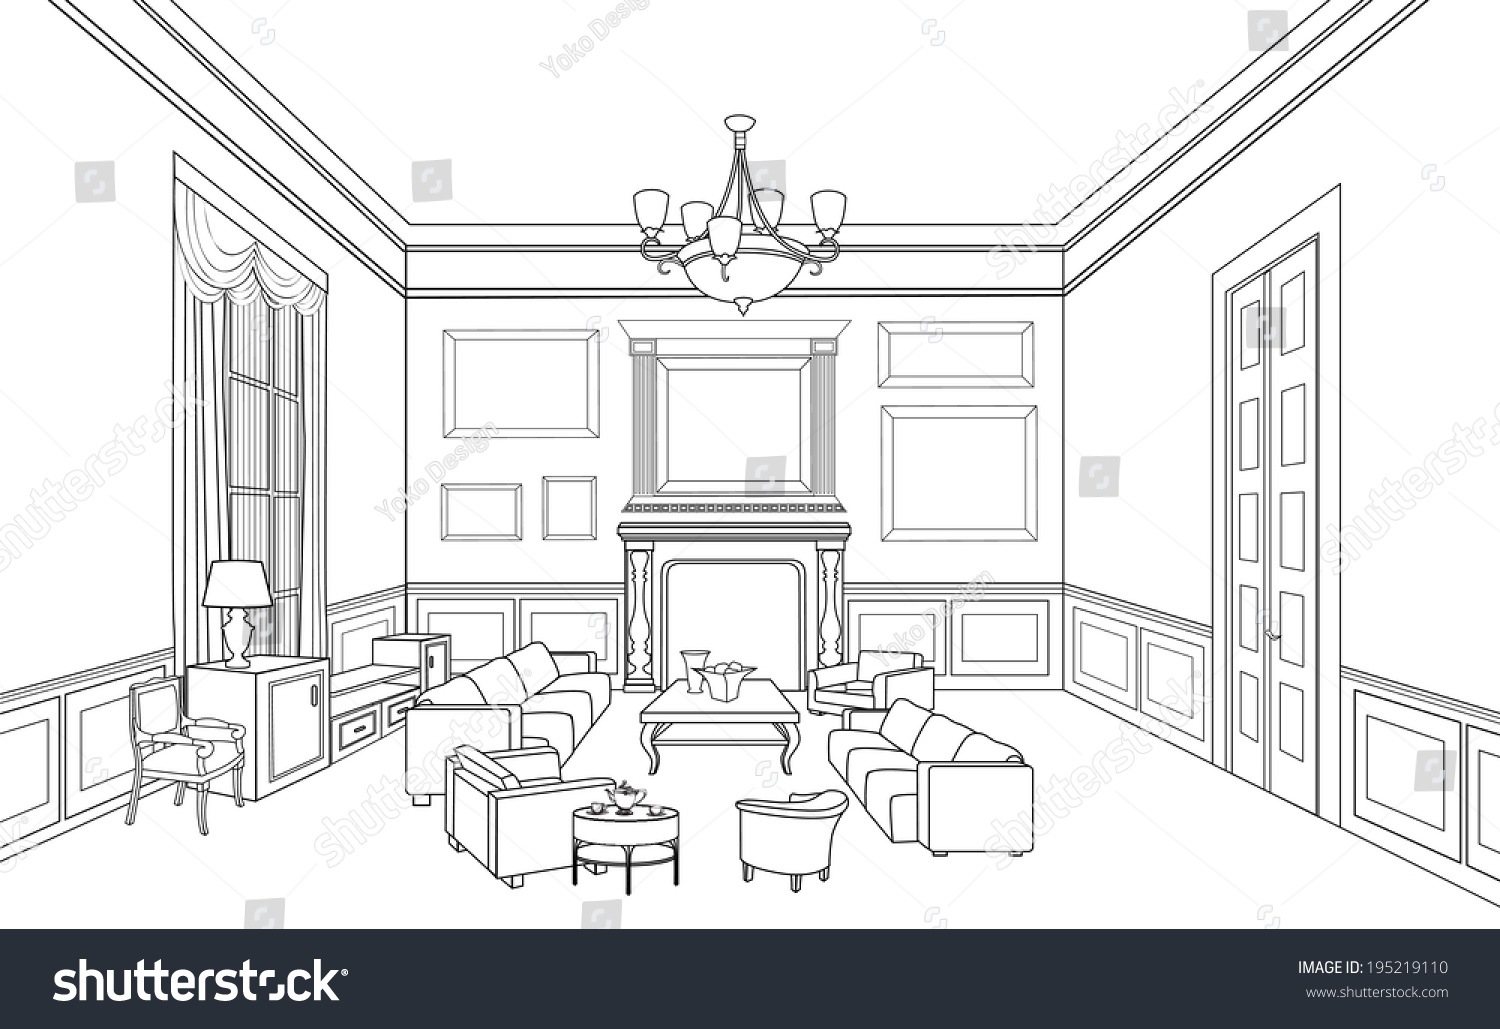 Drawingroom editable vector illustration outline sketch for Room design vector